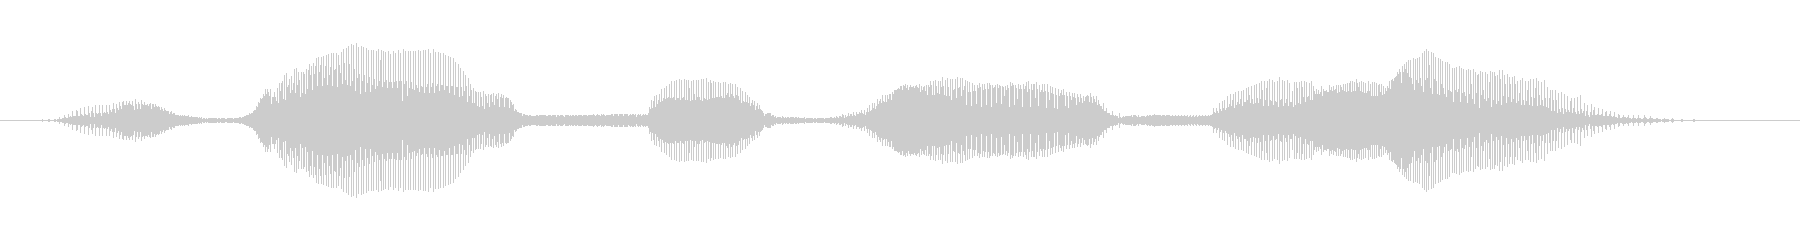 """6 year old girl """"2022""""-03's unreproduced waveform"""